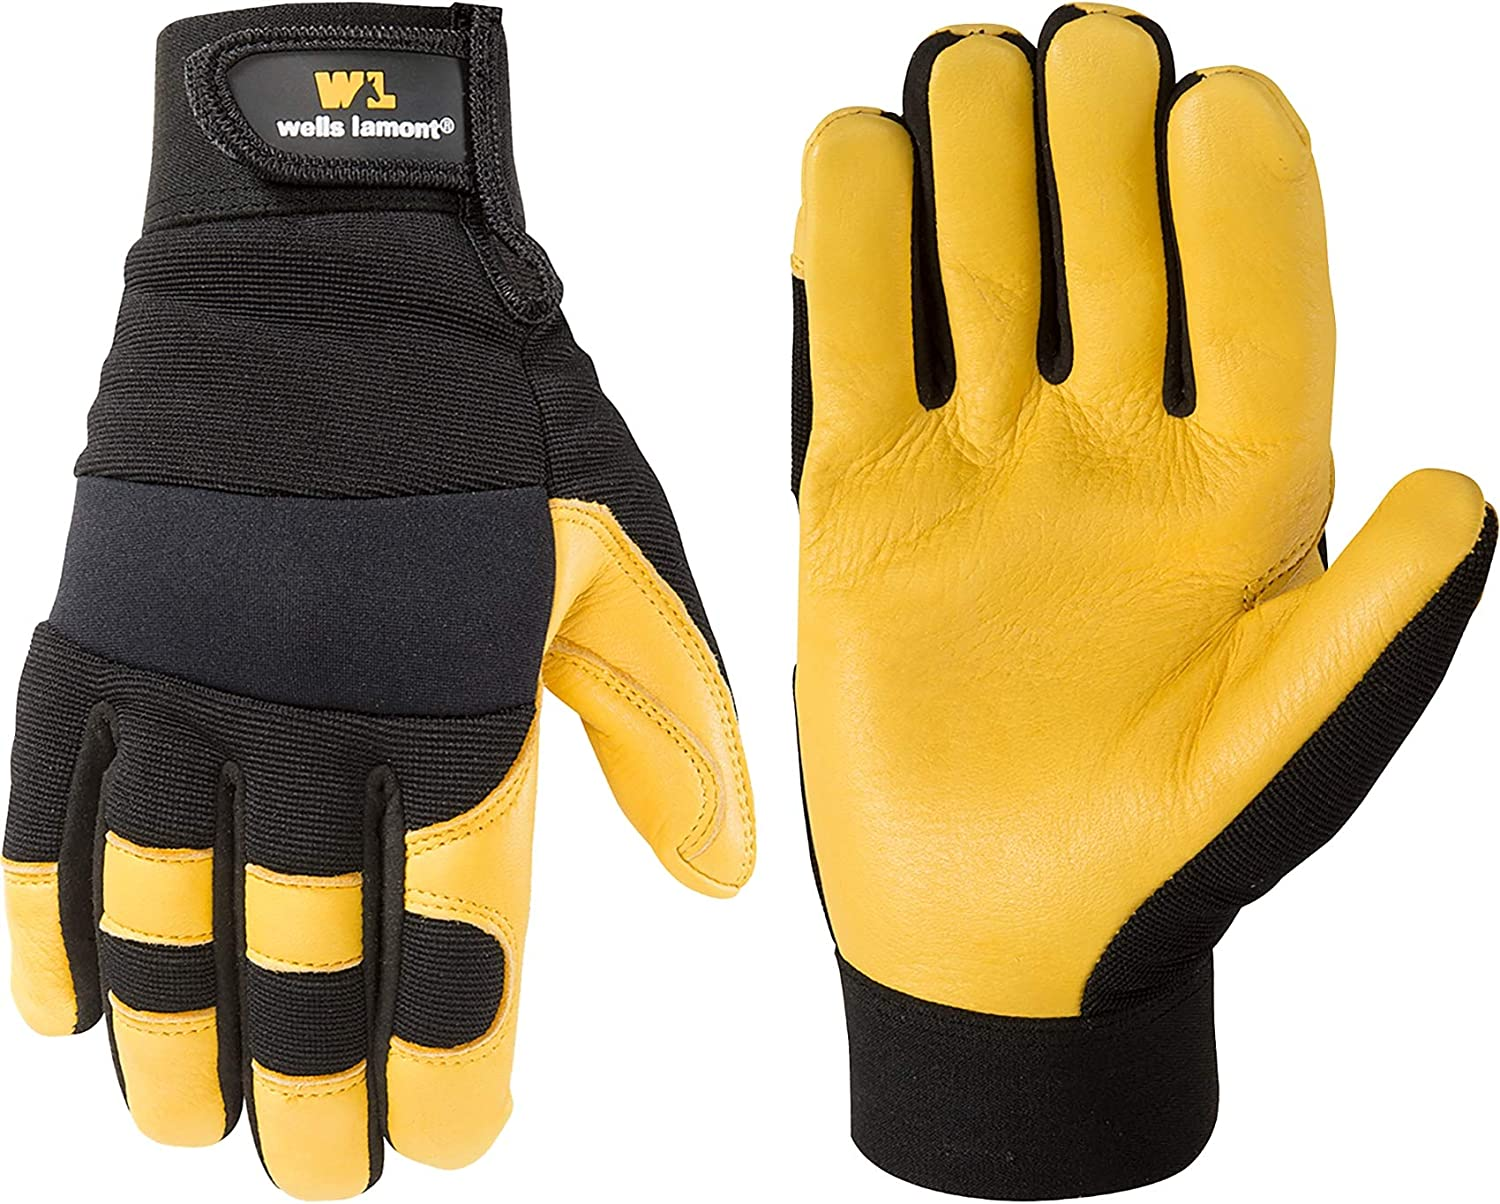 Men's Deerskin Today's only Leather Palm Hybrid 321 Work Lamont Discount mail order Gloves Wells